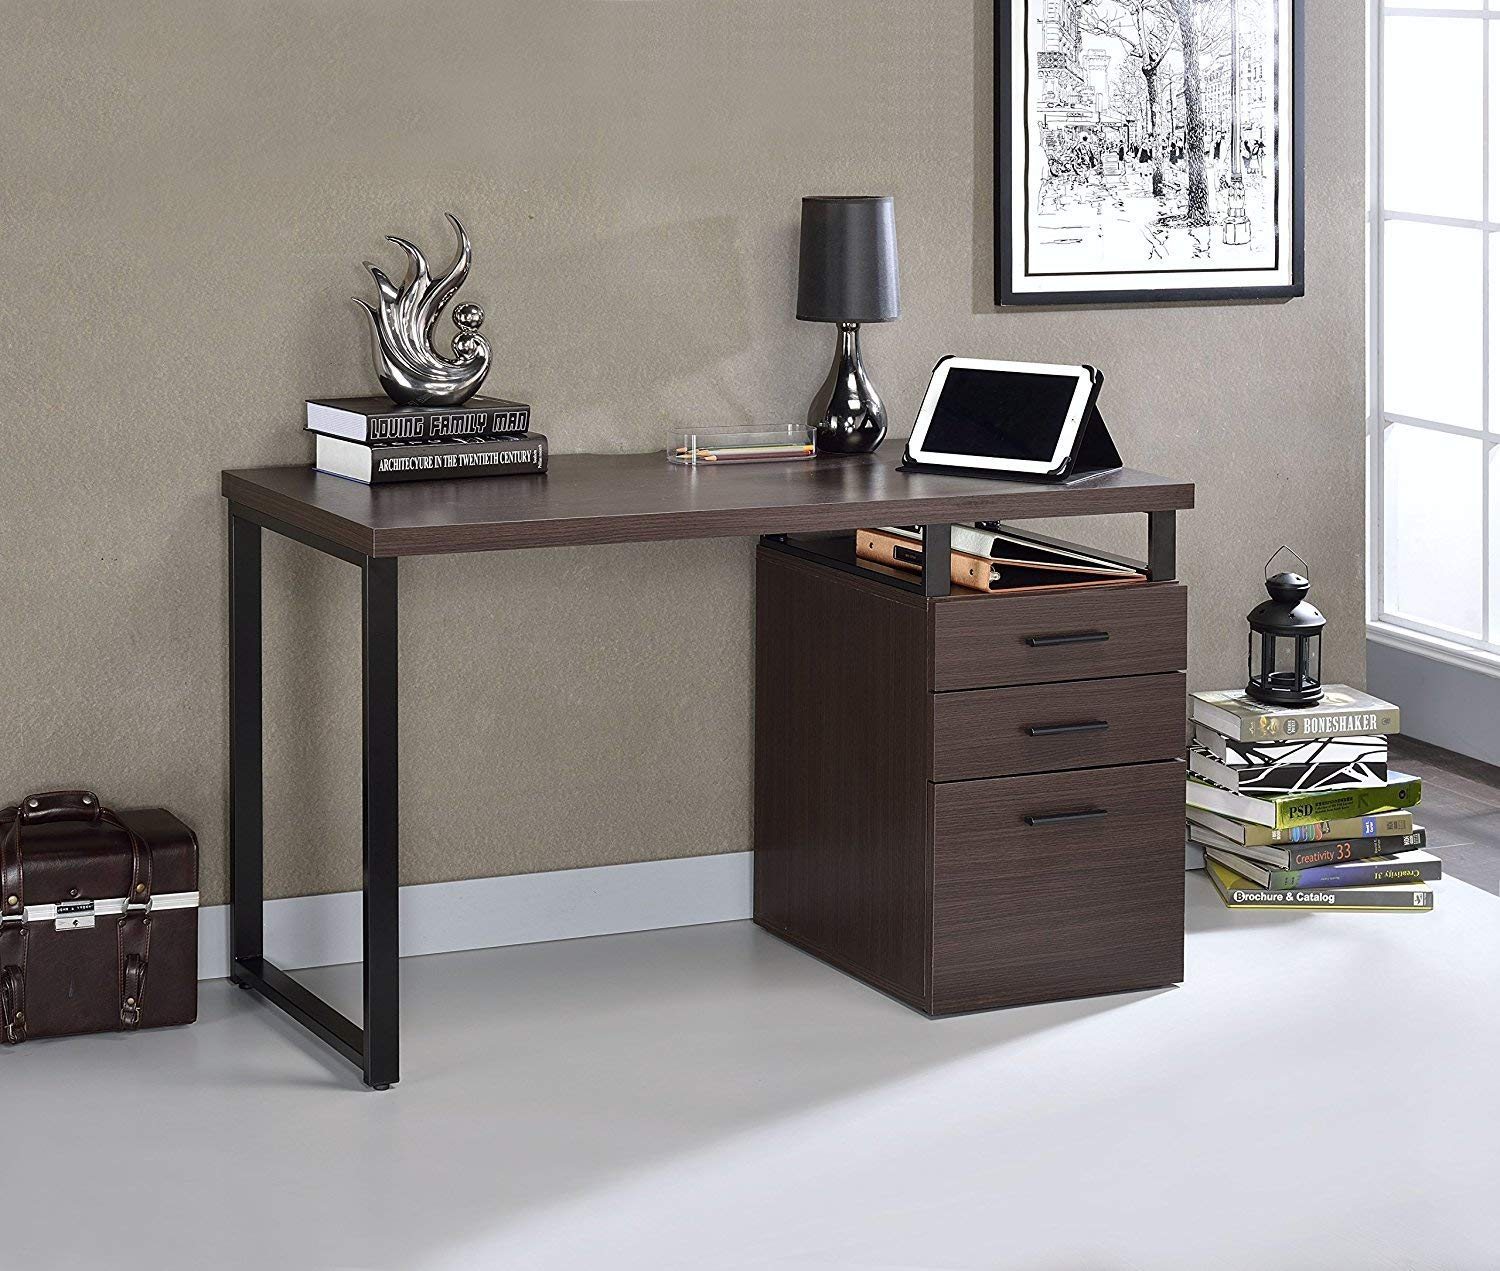 Superieur Major Q Wooden Top Desk With 3 Drawer File Cabinet, For Office/Living